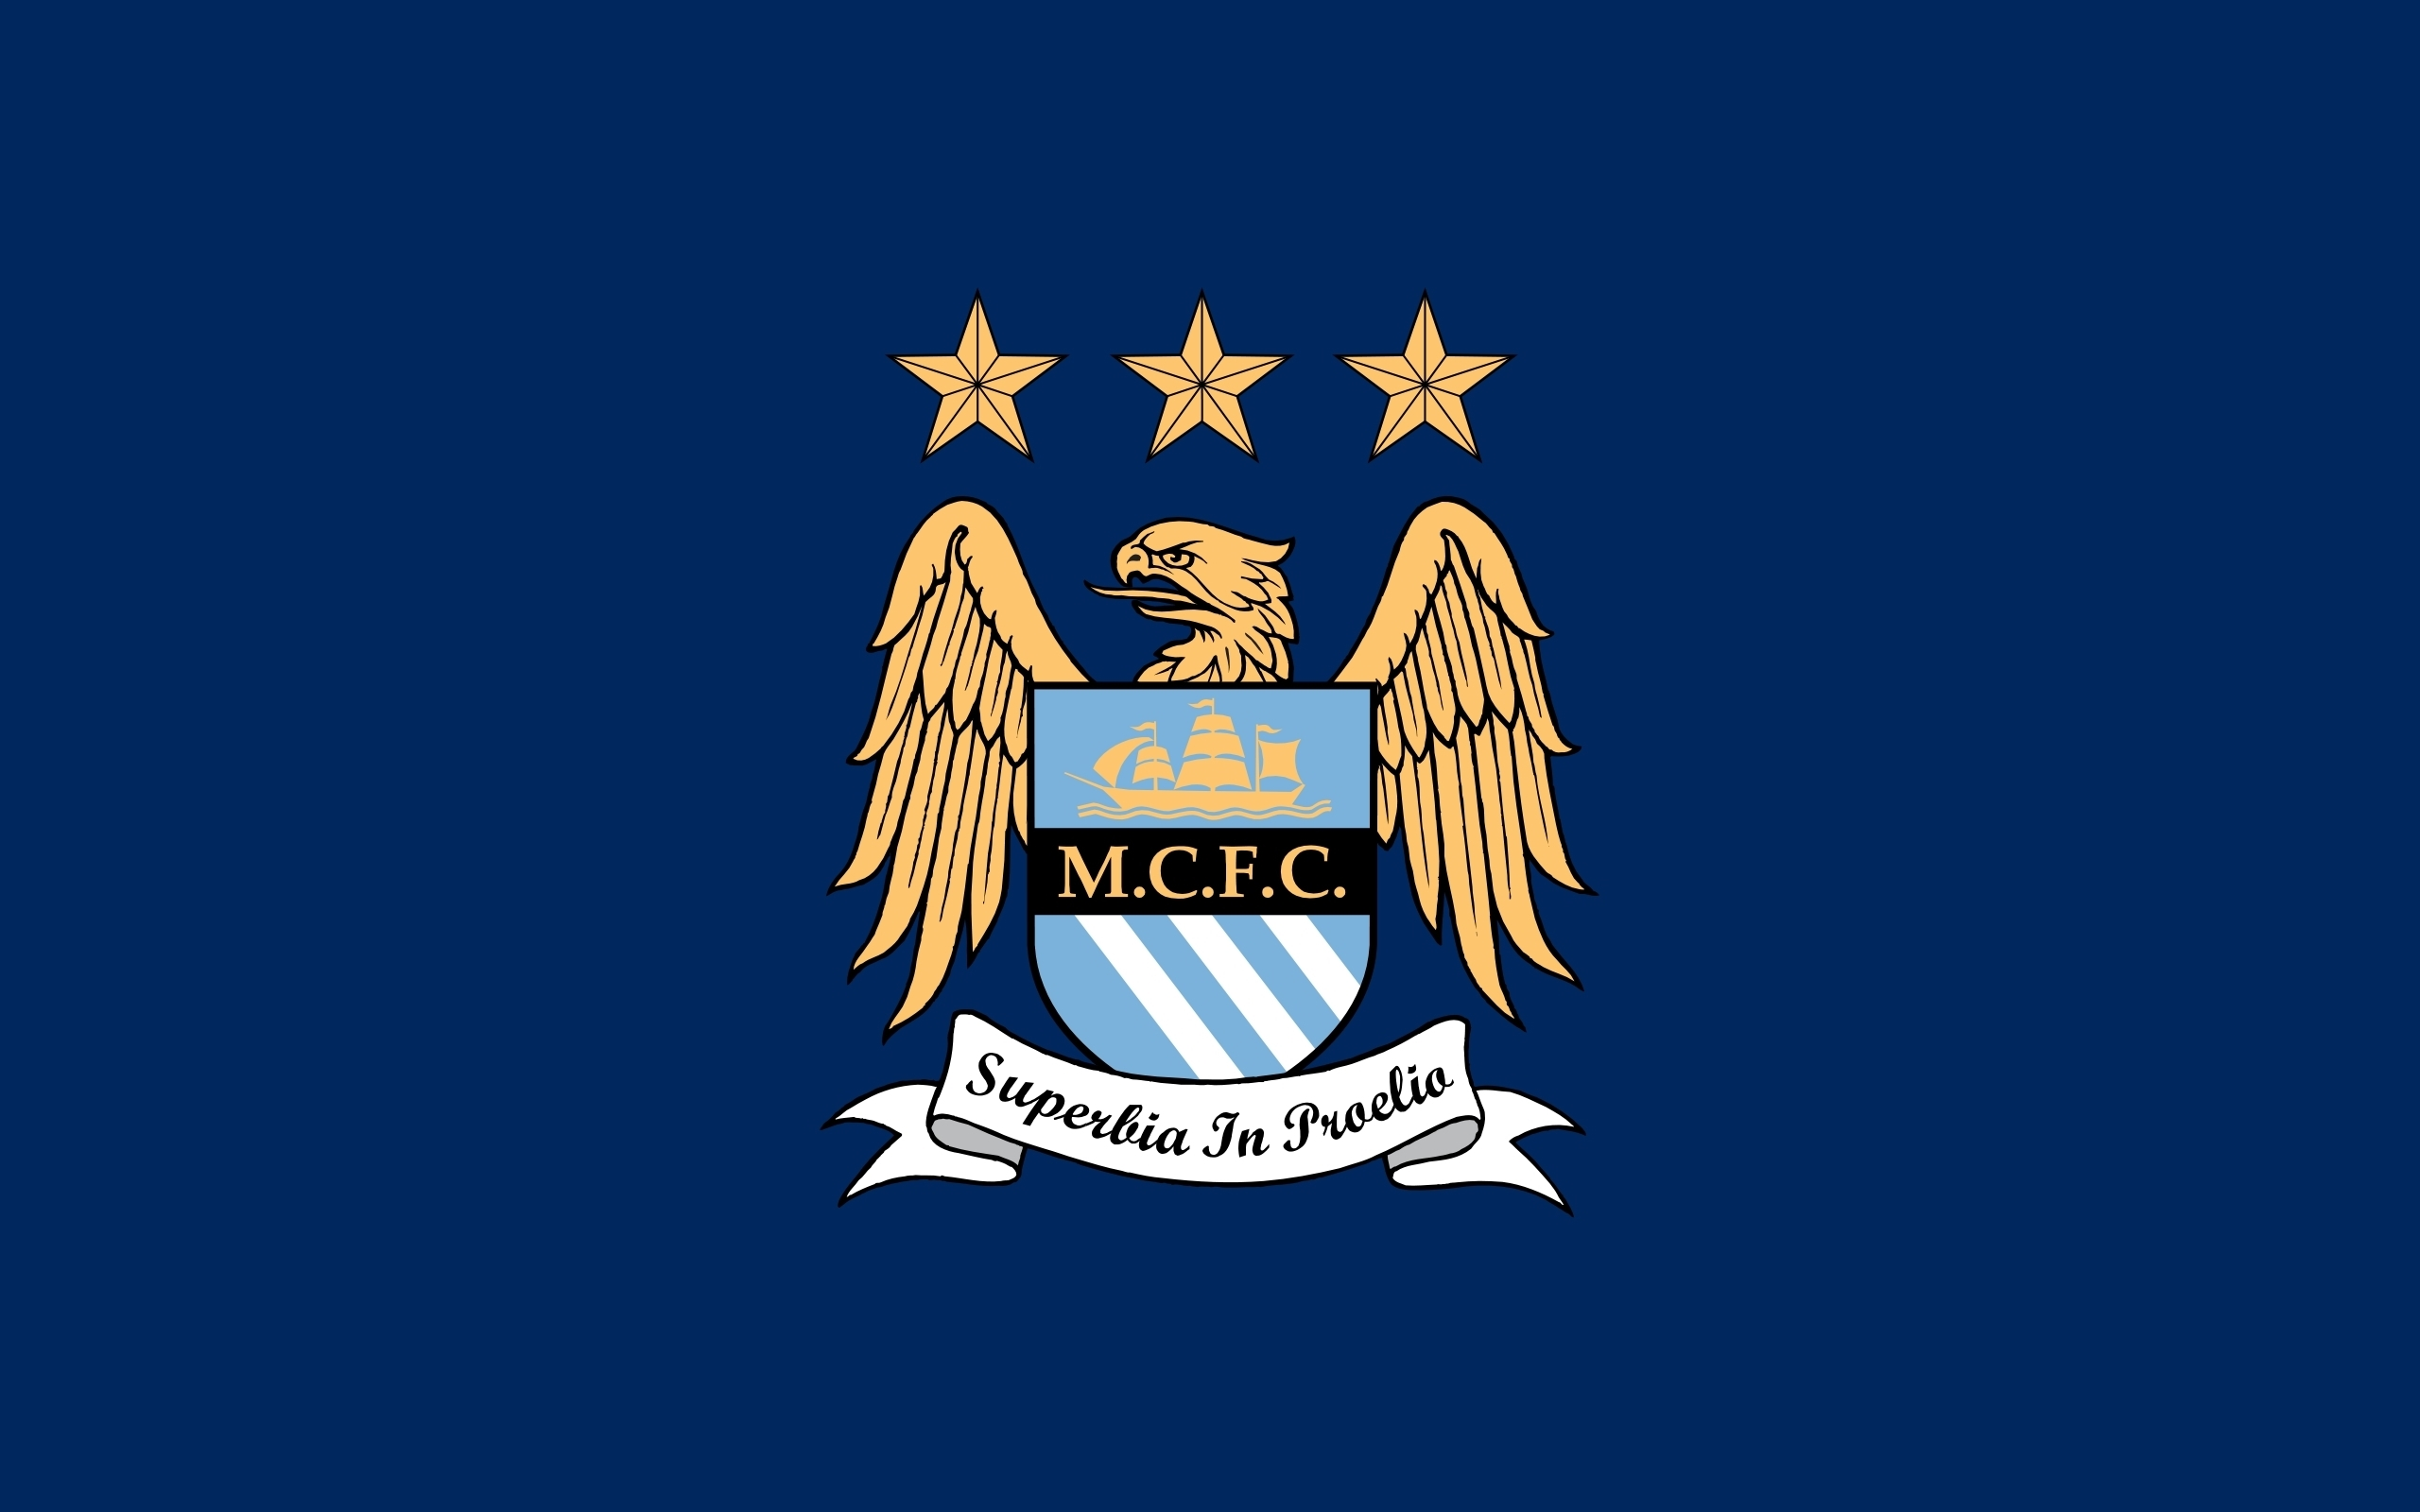 Robinho Manchester City Wallpapers Wallpaper Images 2560x1600